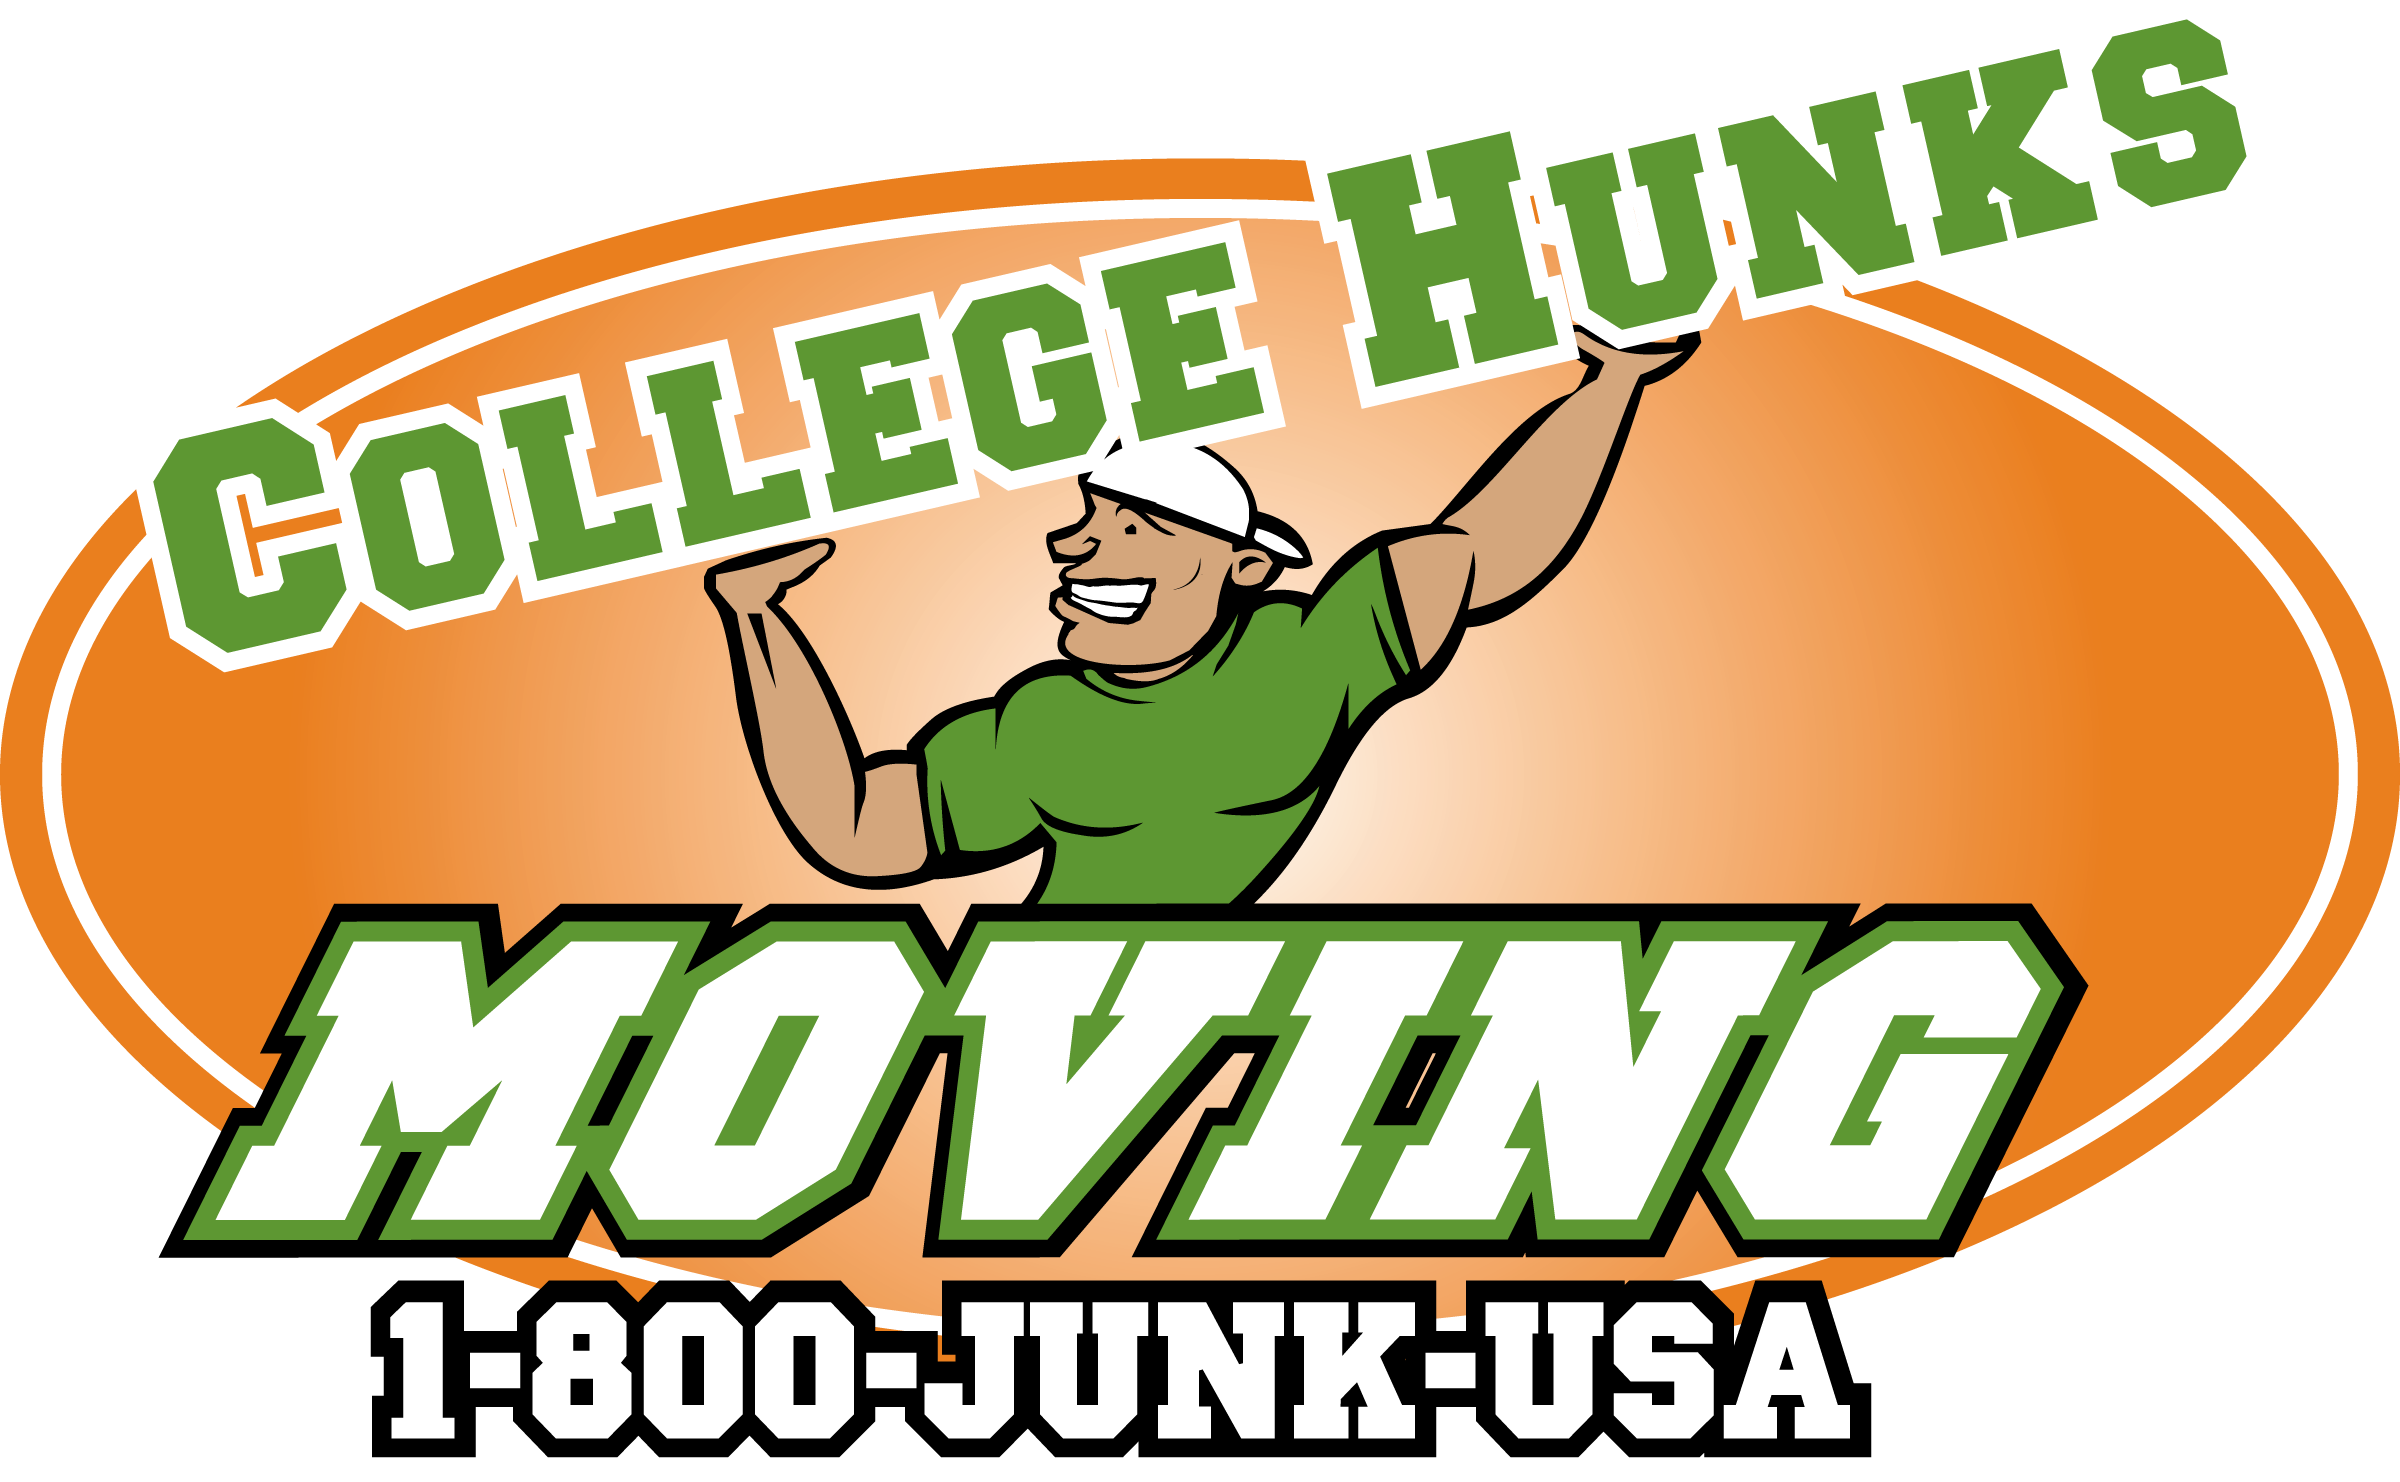 College Hunks Hauling Junk And College Hunks Moving West Chester